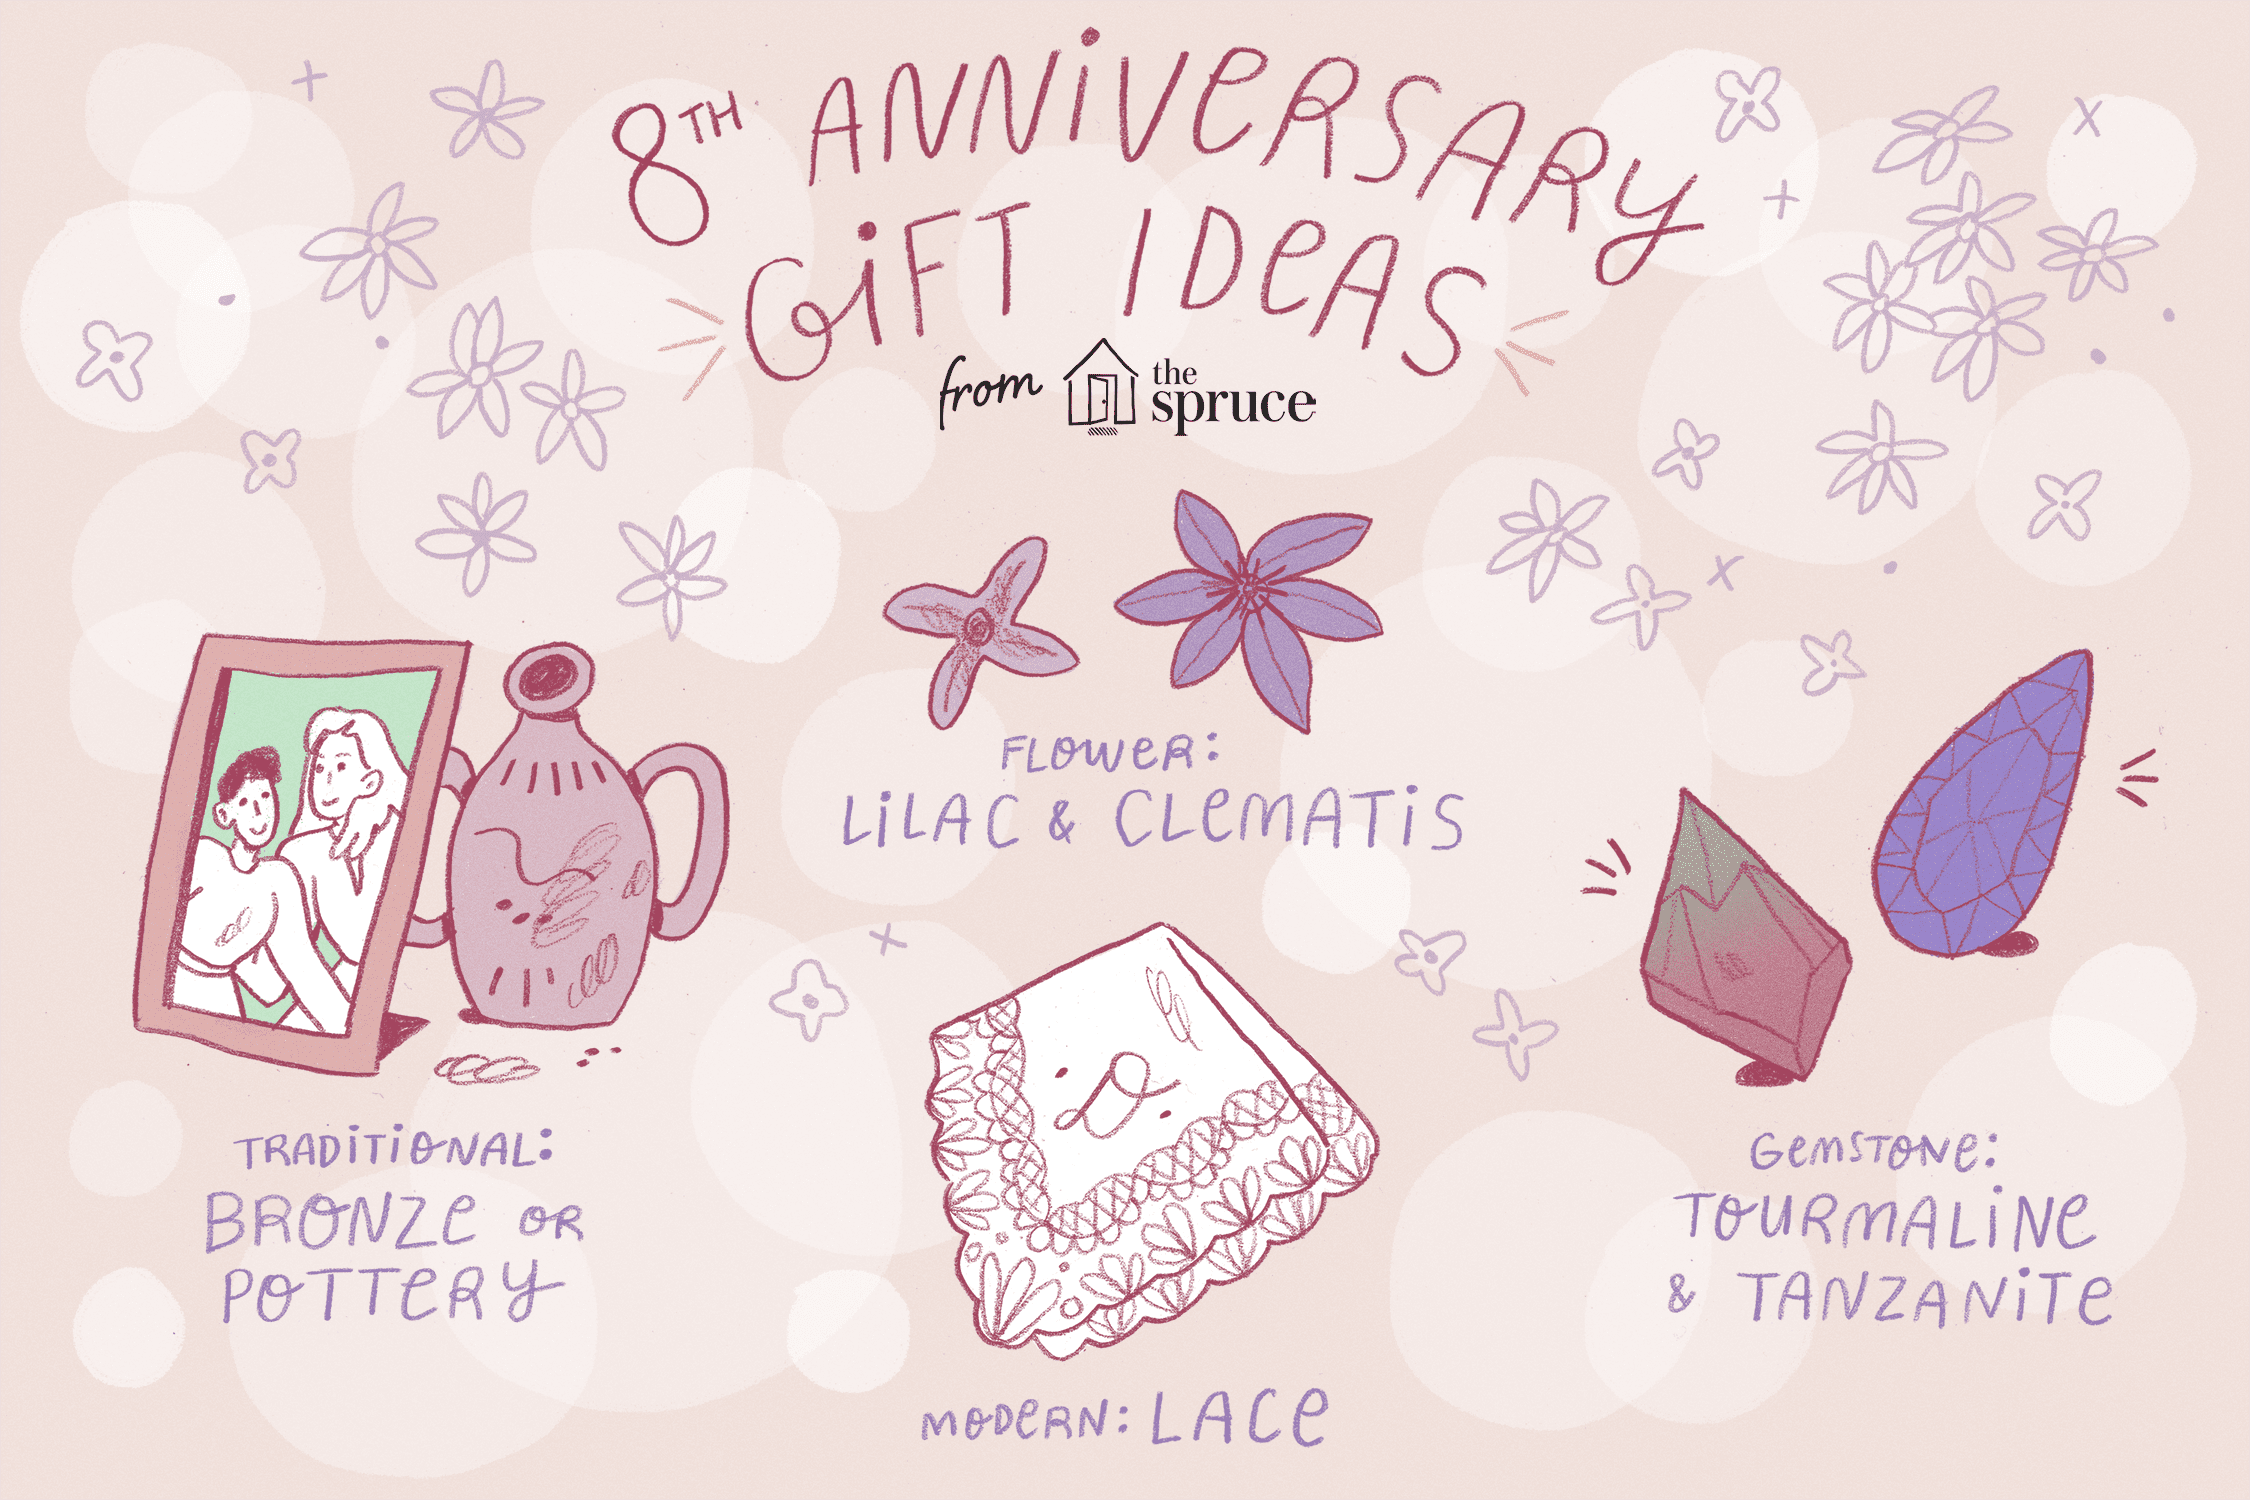 8th Anniversary Gift Ideas